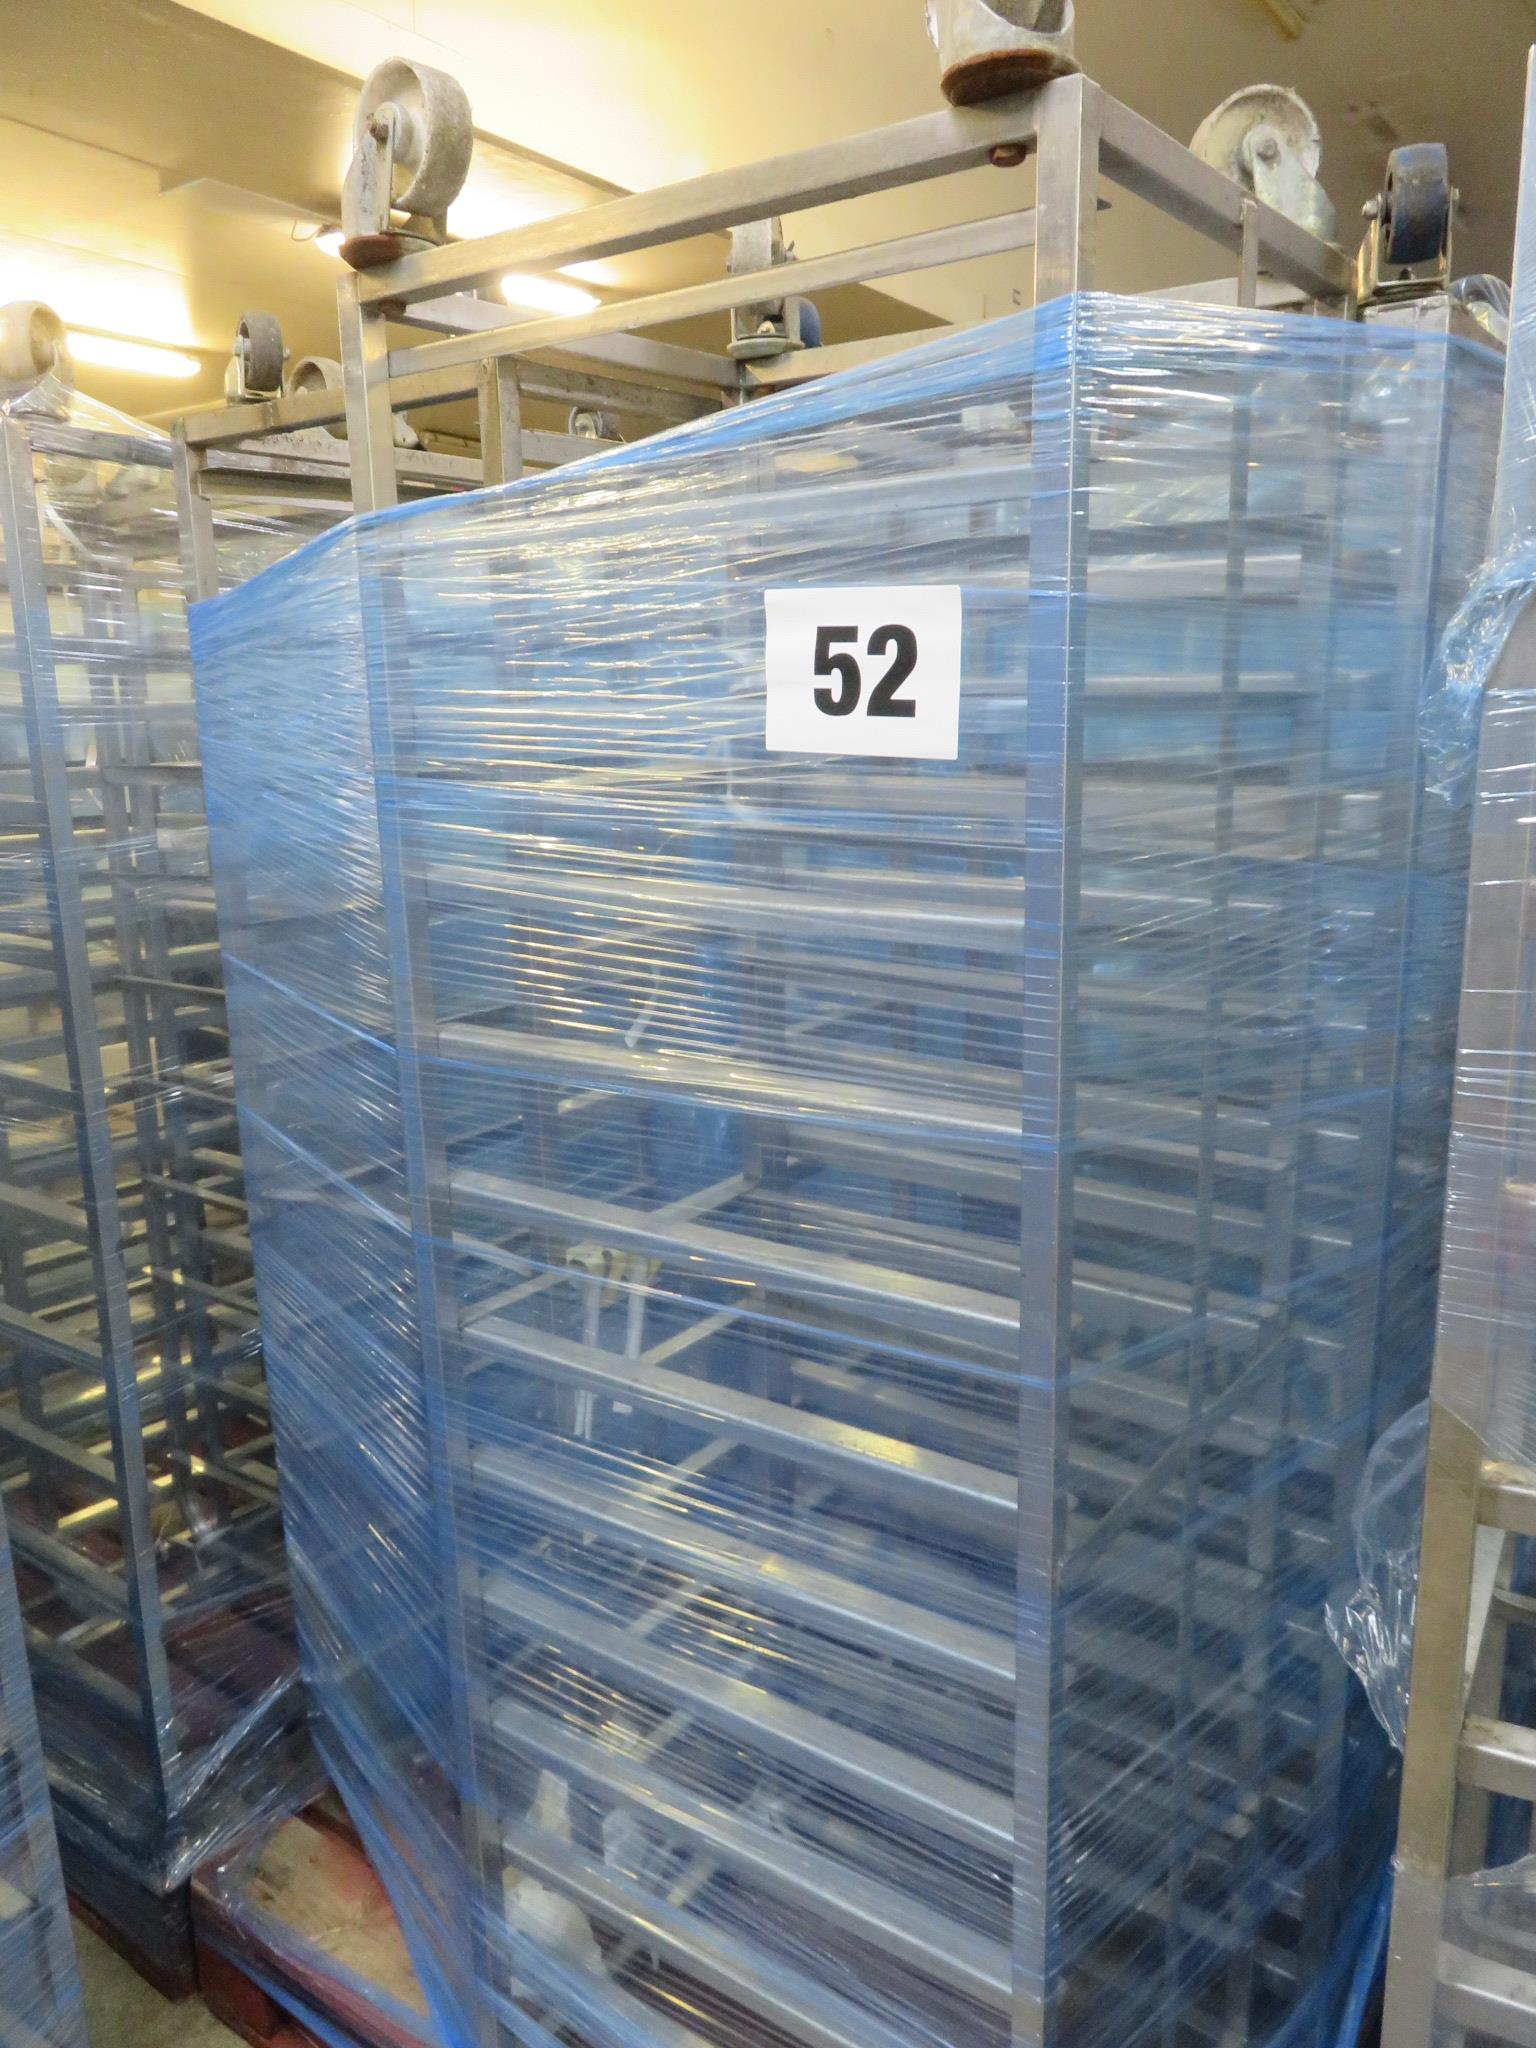 Lot 52 - 3 x S/s Racks:- 2 x S/s Racks capable of taking 12 trays.Approx.430 x 650 x 1800mm high.LO£20